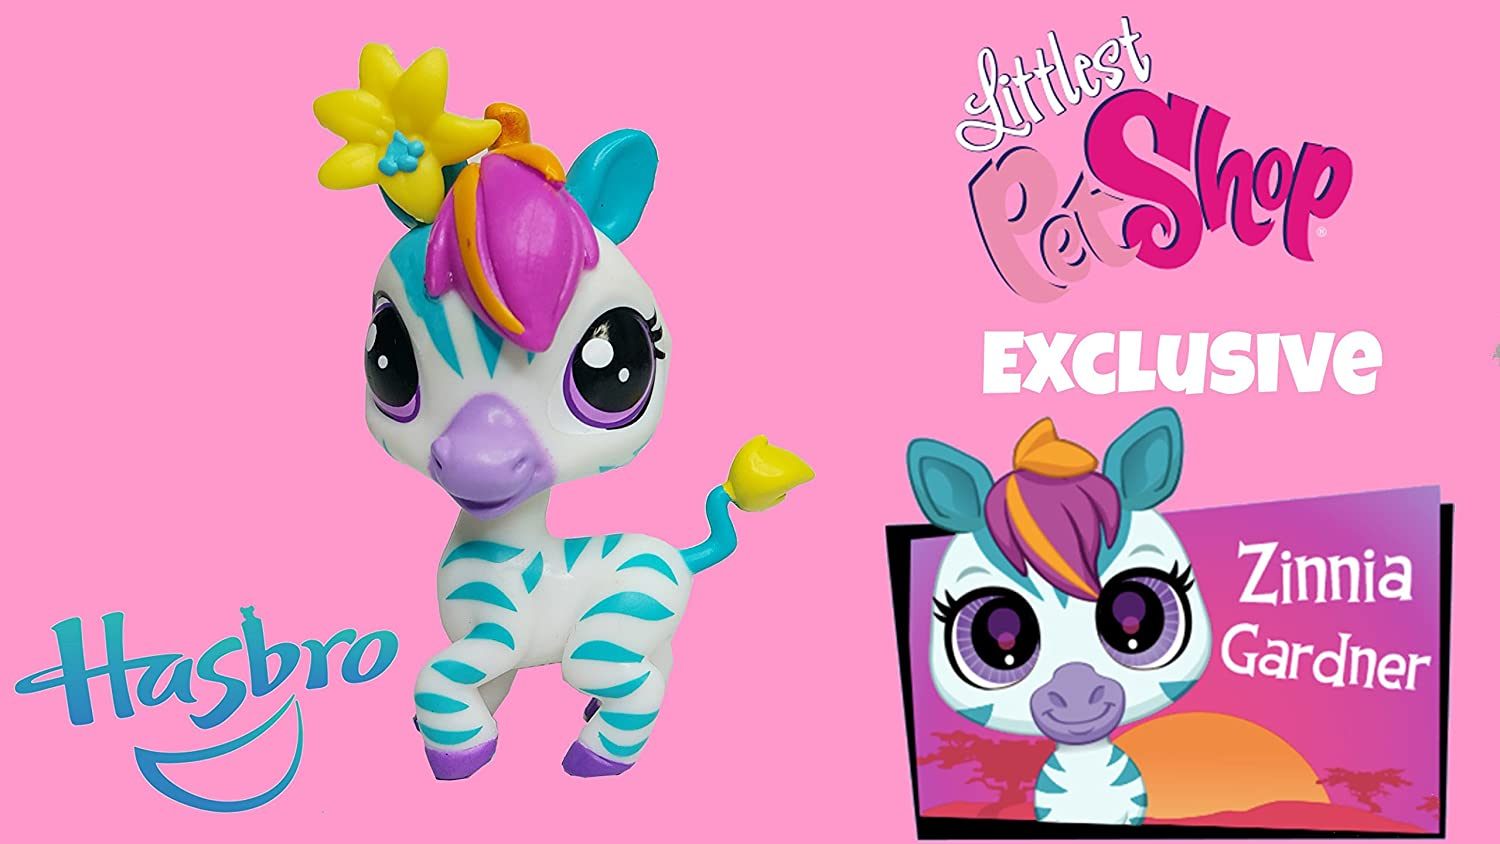 Littlest Pet Shop Special Edition Zinnia Gardner Zebra #3846